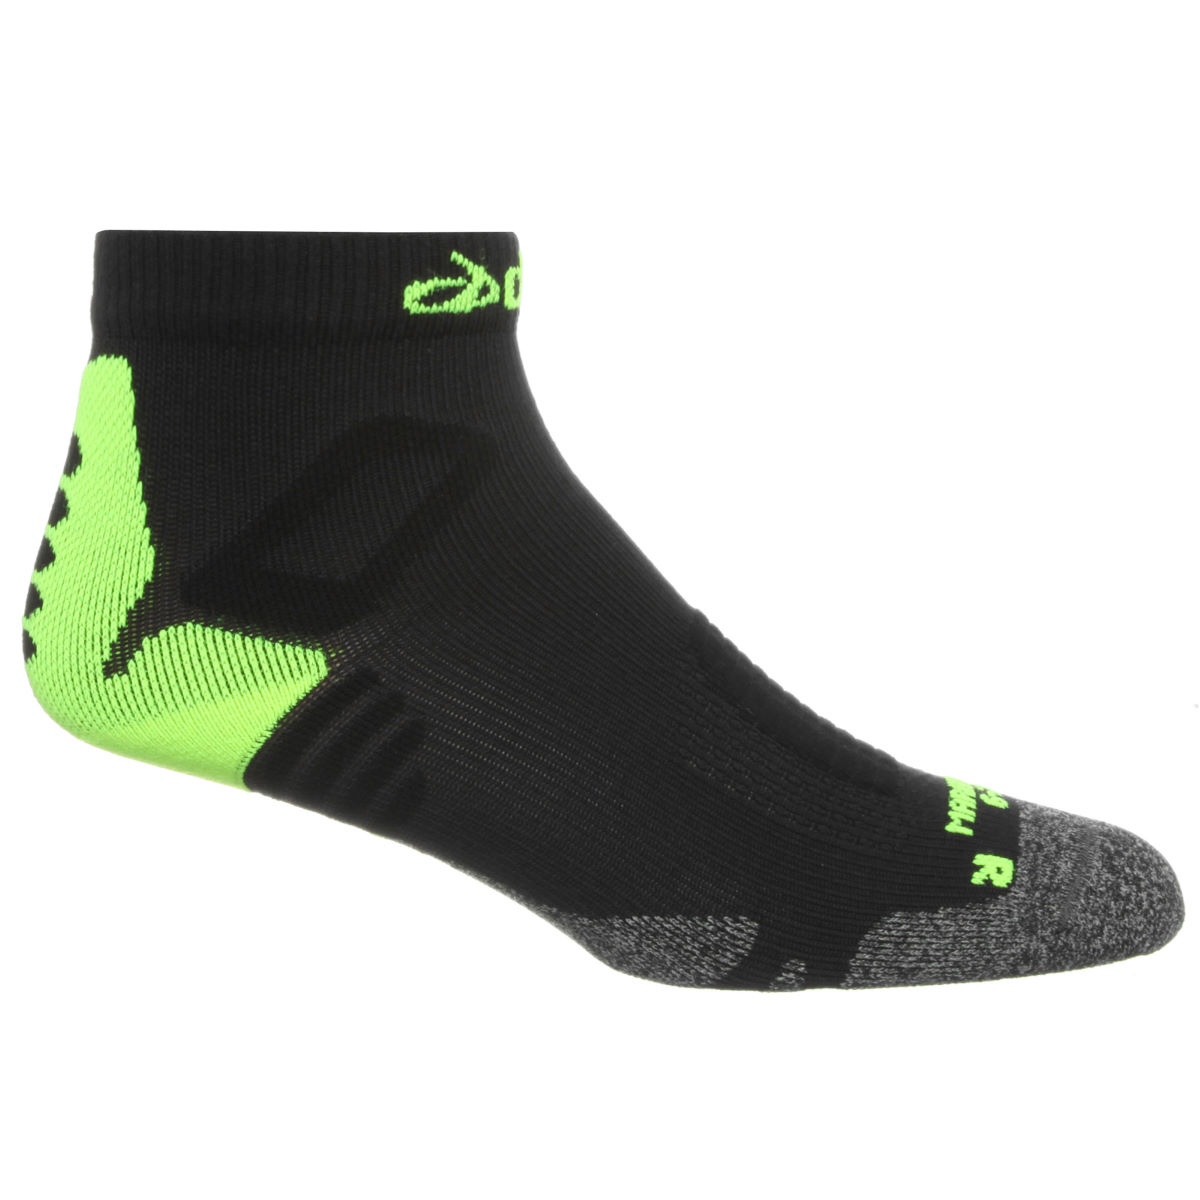 dhb Marathon Run Socks - M Black/Yellow | Running Socks